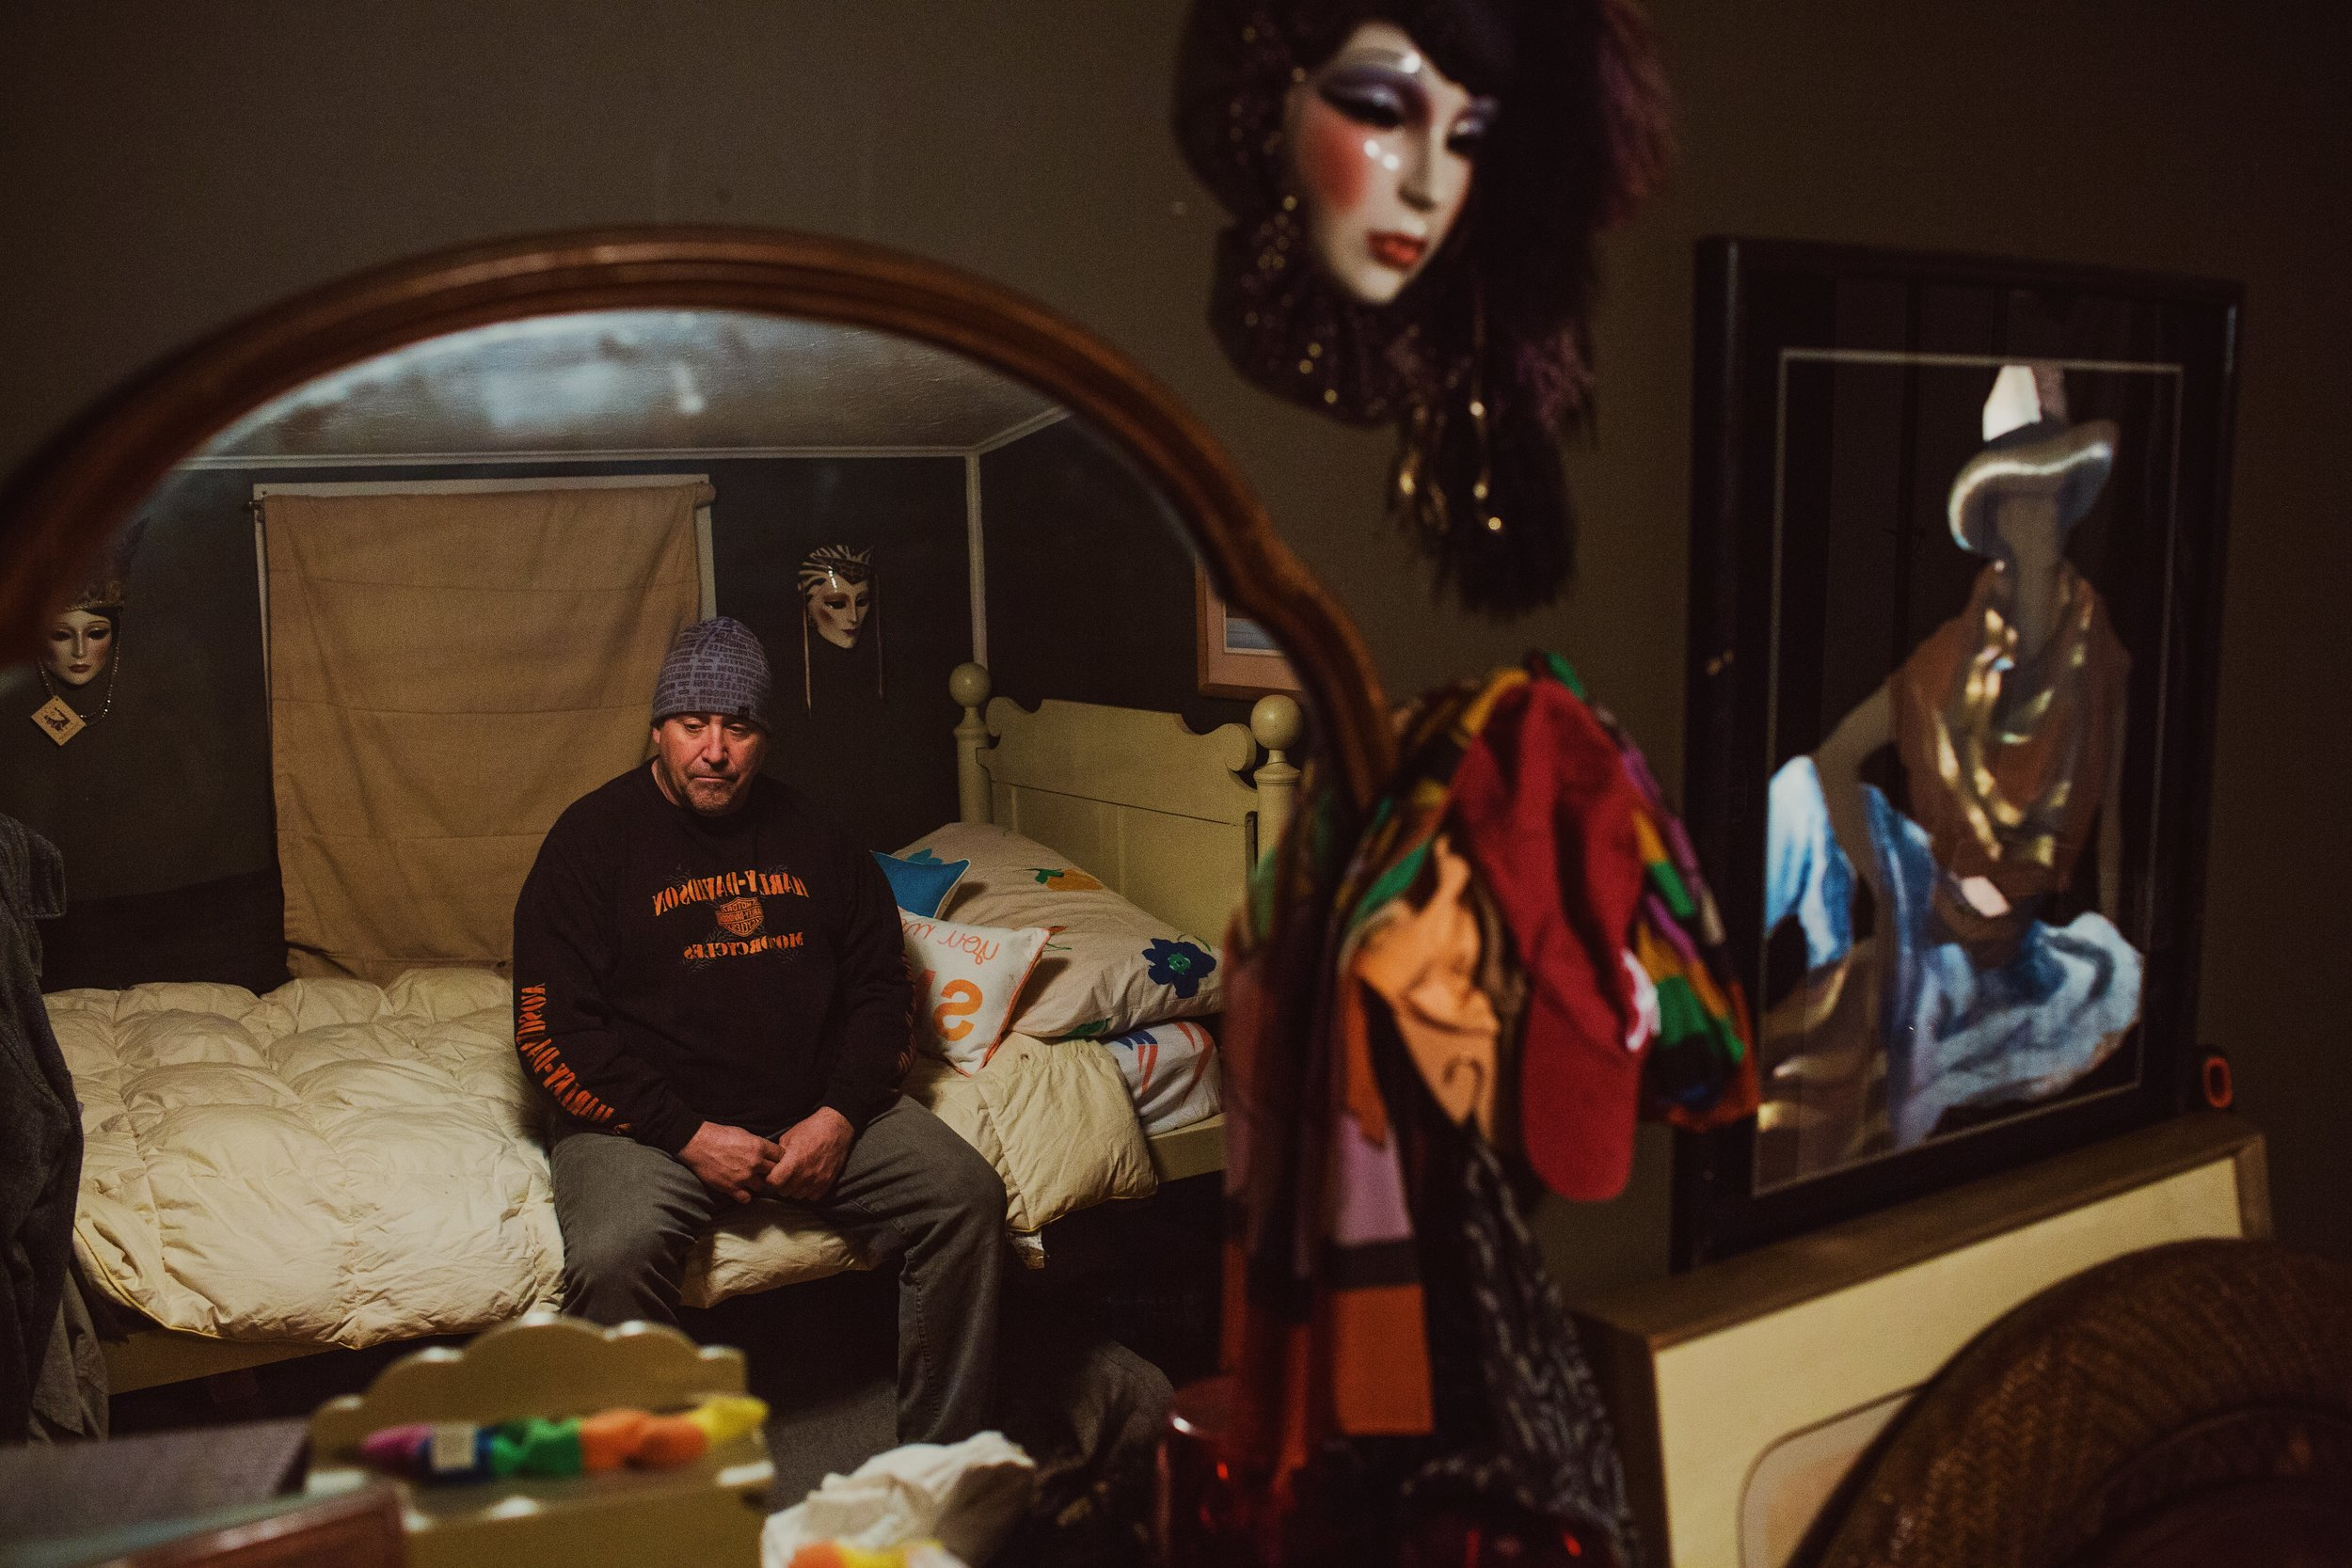 Eric Weil, of Alton, New Hampshire, sits in the bedroom once occupied by Justin Levesque. Weil took in Levesque, a friend's son, who was battling with substance addiction. According to Belknap Superior Court documents, on the night of August 24, 2017, Eric Weil called the Alton Police Department to his home after finding drugs belonging to Levesque. Upon their arrival, Weil attempted to hand a folded piece of paper which contained an unknown substance to the police officers who instructed him to place it on the ground. Following the events of that evening in which Weil picked up the paper because, he said, it was sitting on the ground and he was worried about his animals, Weil was charged with a class B felony. The felony charge is reckless conduct with a deadly weapon after Weil allegedly blew Fentanyl in the direction of police officers while trying to remove a powdery substance he noticed on his person. After being found guilty by a jury for the class B felony, the presiding judge granted Weil's Motion to Set Aside Verdict. From his experience calling the police to report a drug incident to being charged with a class B felony, Weil said he could not trust the police department for assistance in the future. John Tully for The New York Times